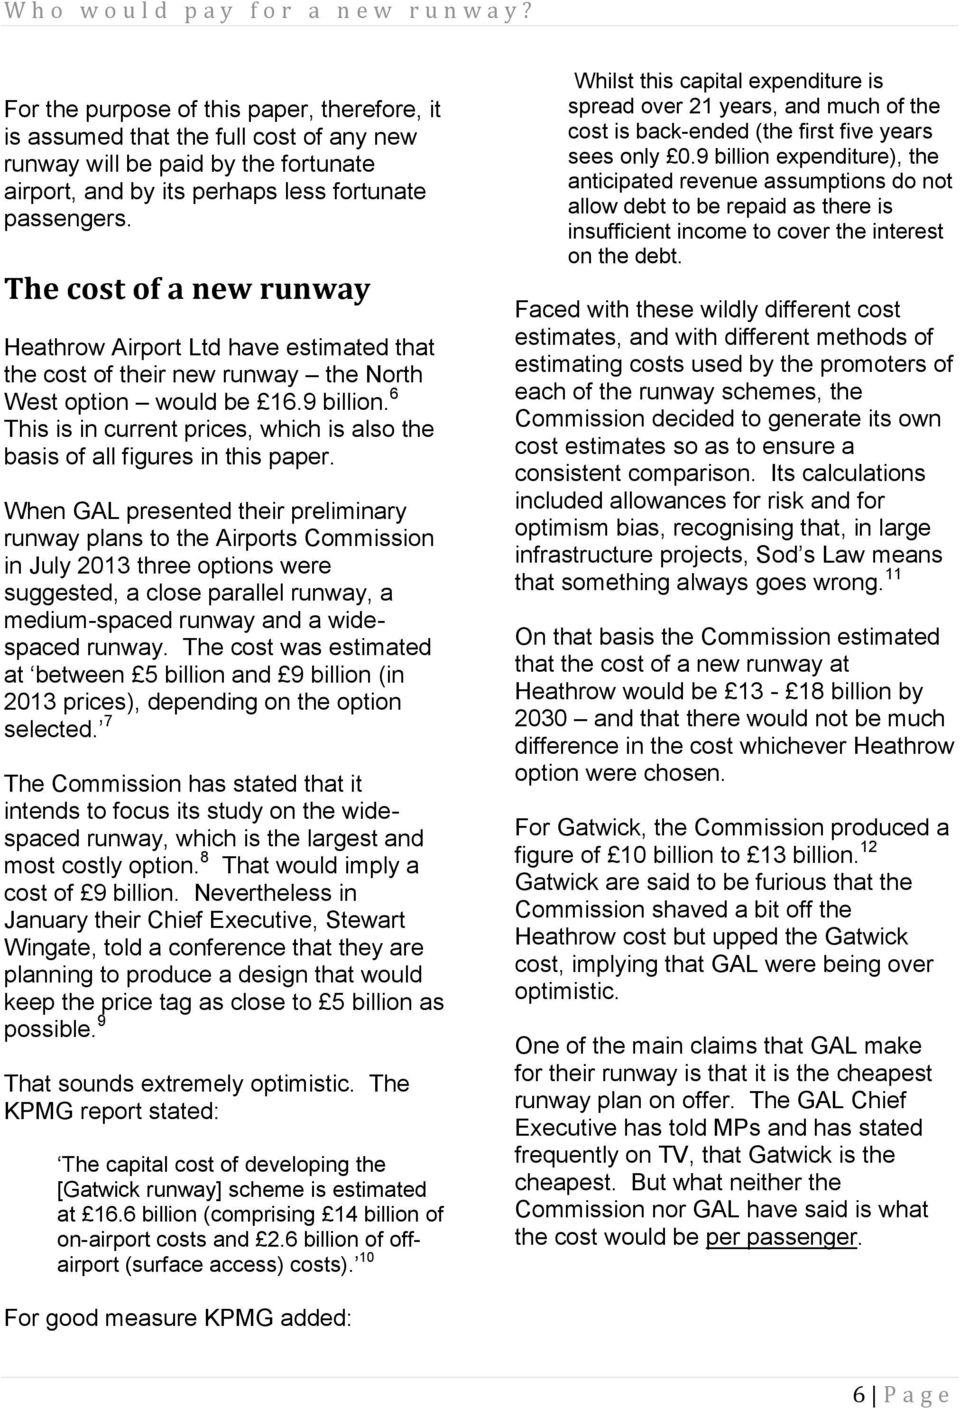 The cost of a new runway Heathrow Airport Ltd have estimated that the cost of their new runway the North West option would be 16.9 billion.